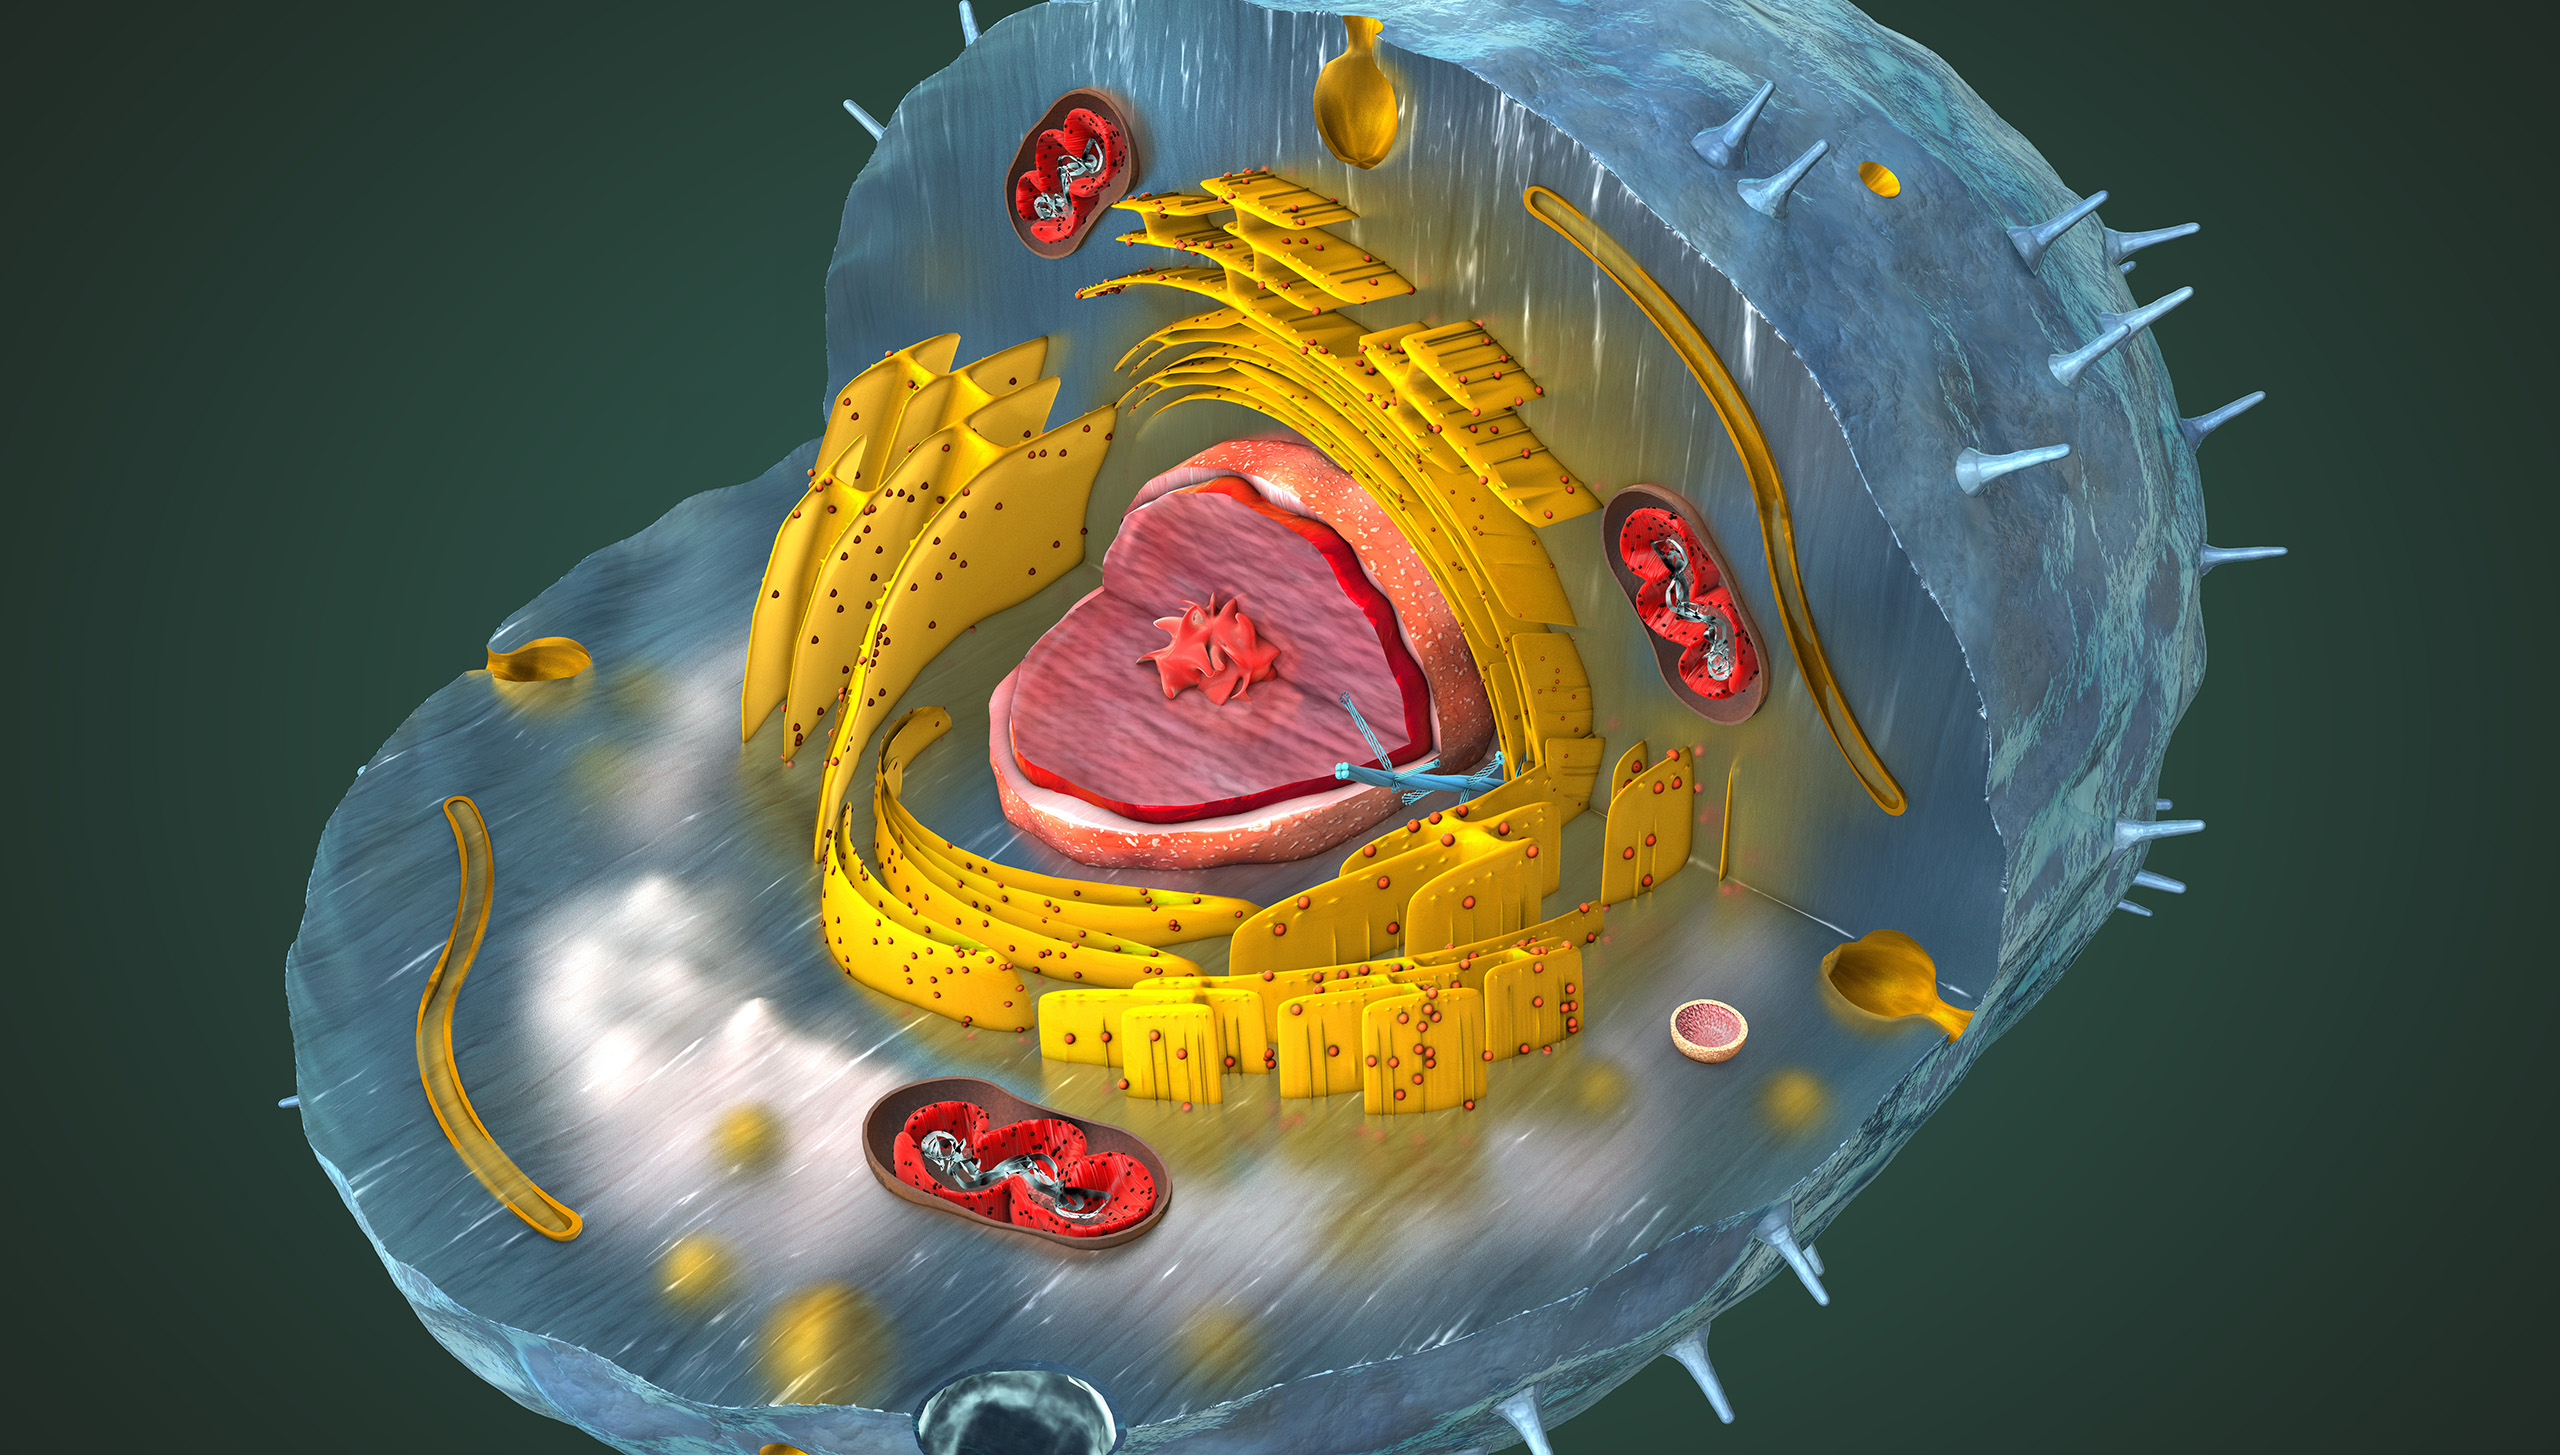 Scientifically correct 3d illustration of the internal structure of a human cell, cut-away